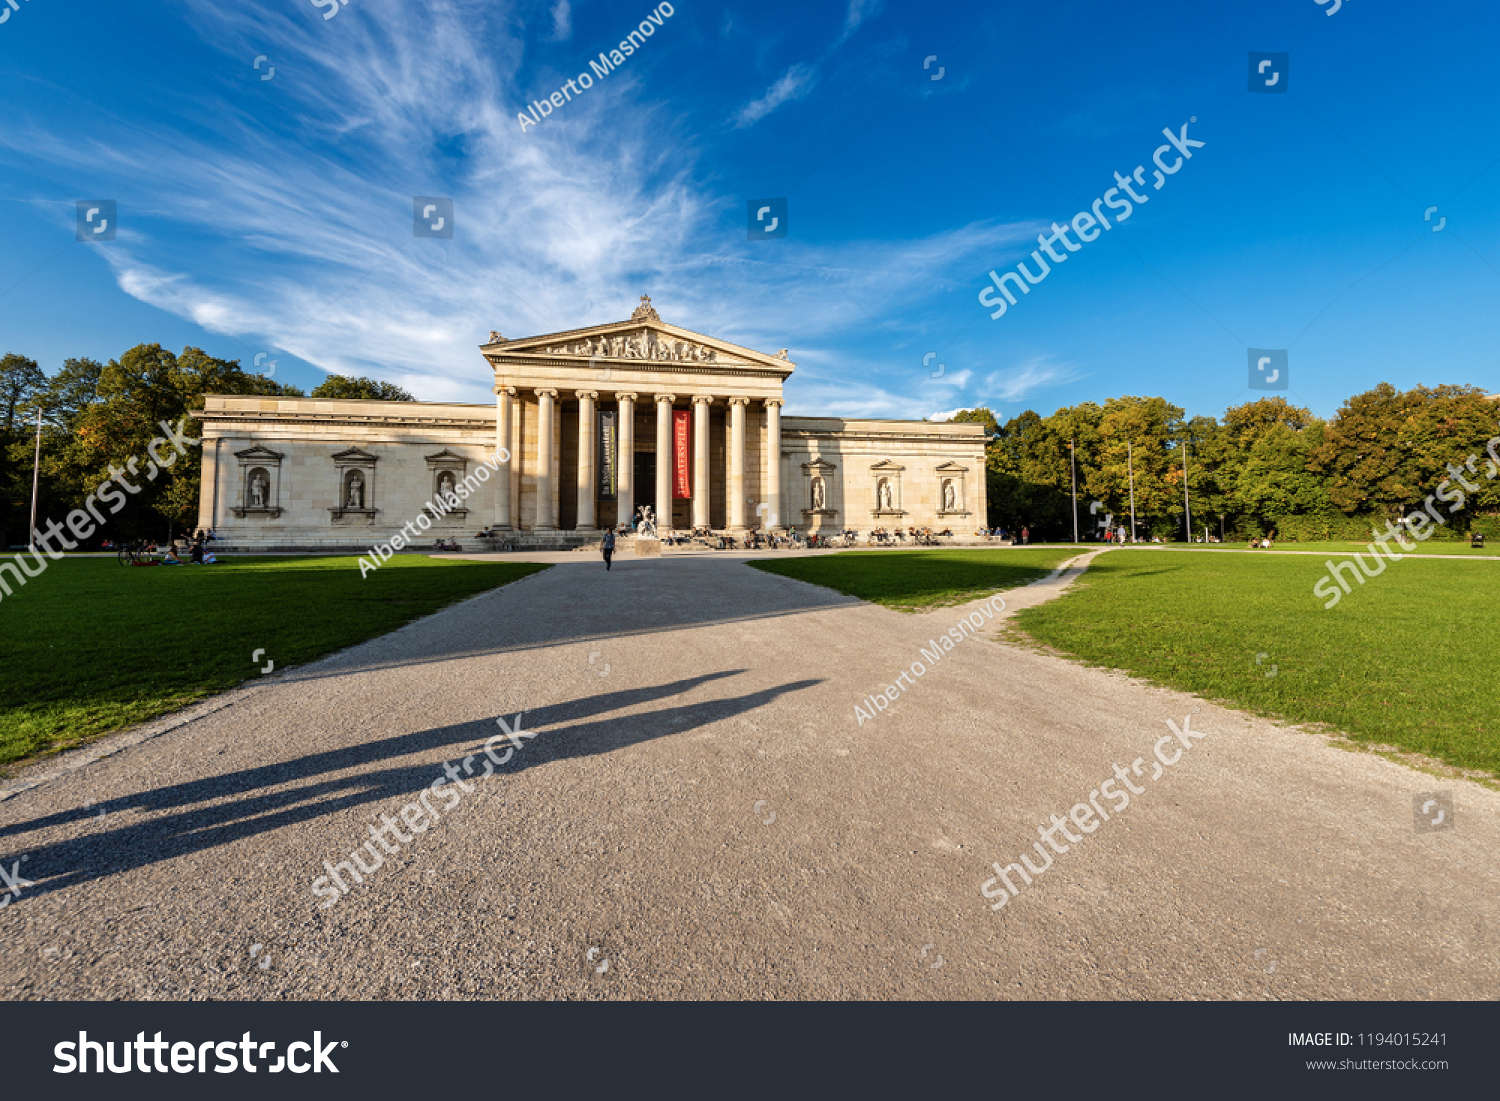 Villa Medici München Munich Germany Sept 8 2018 Glyptothek Stock Photo Edit Now